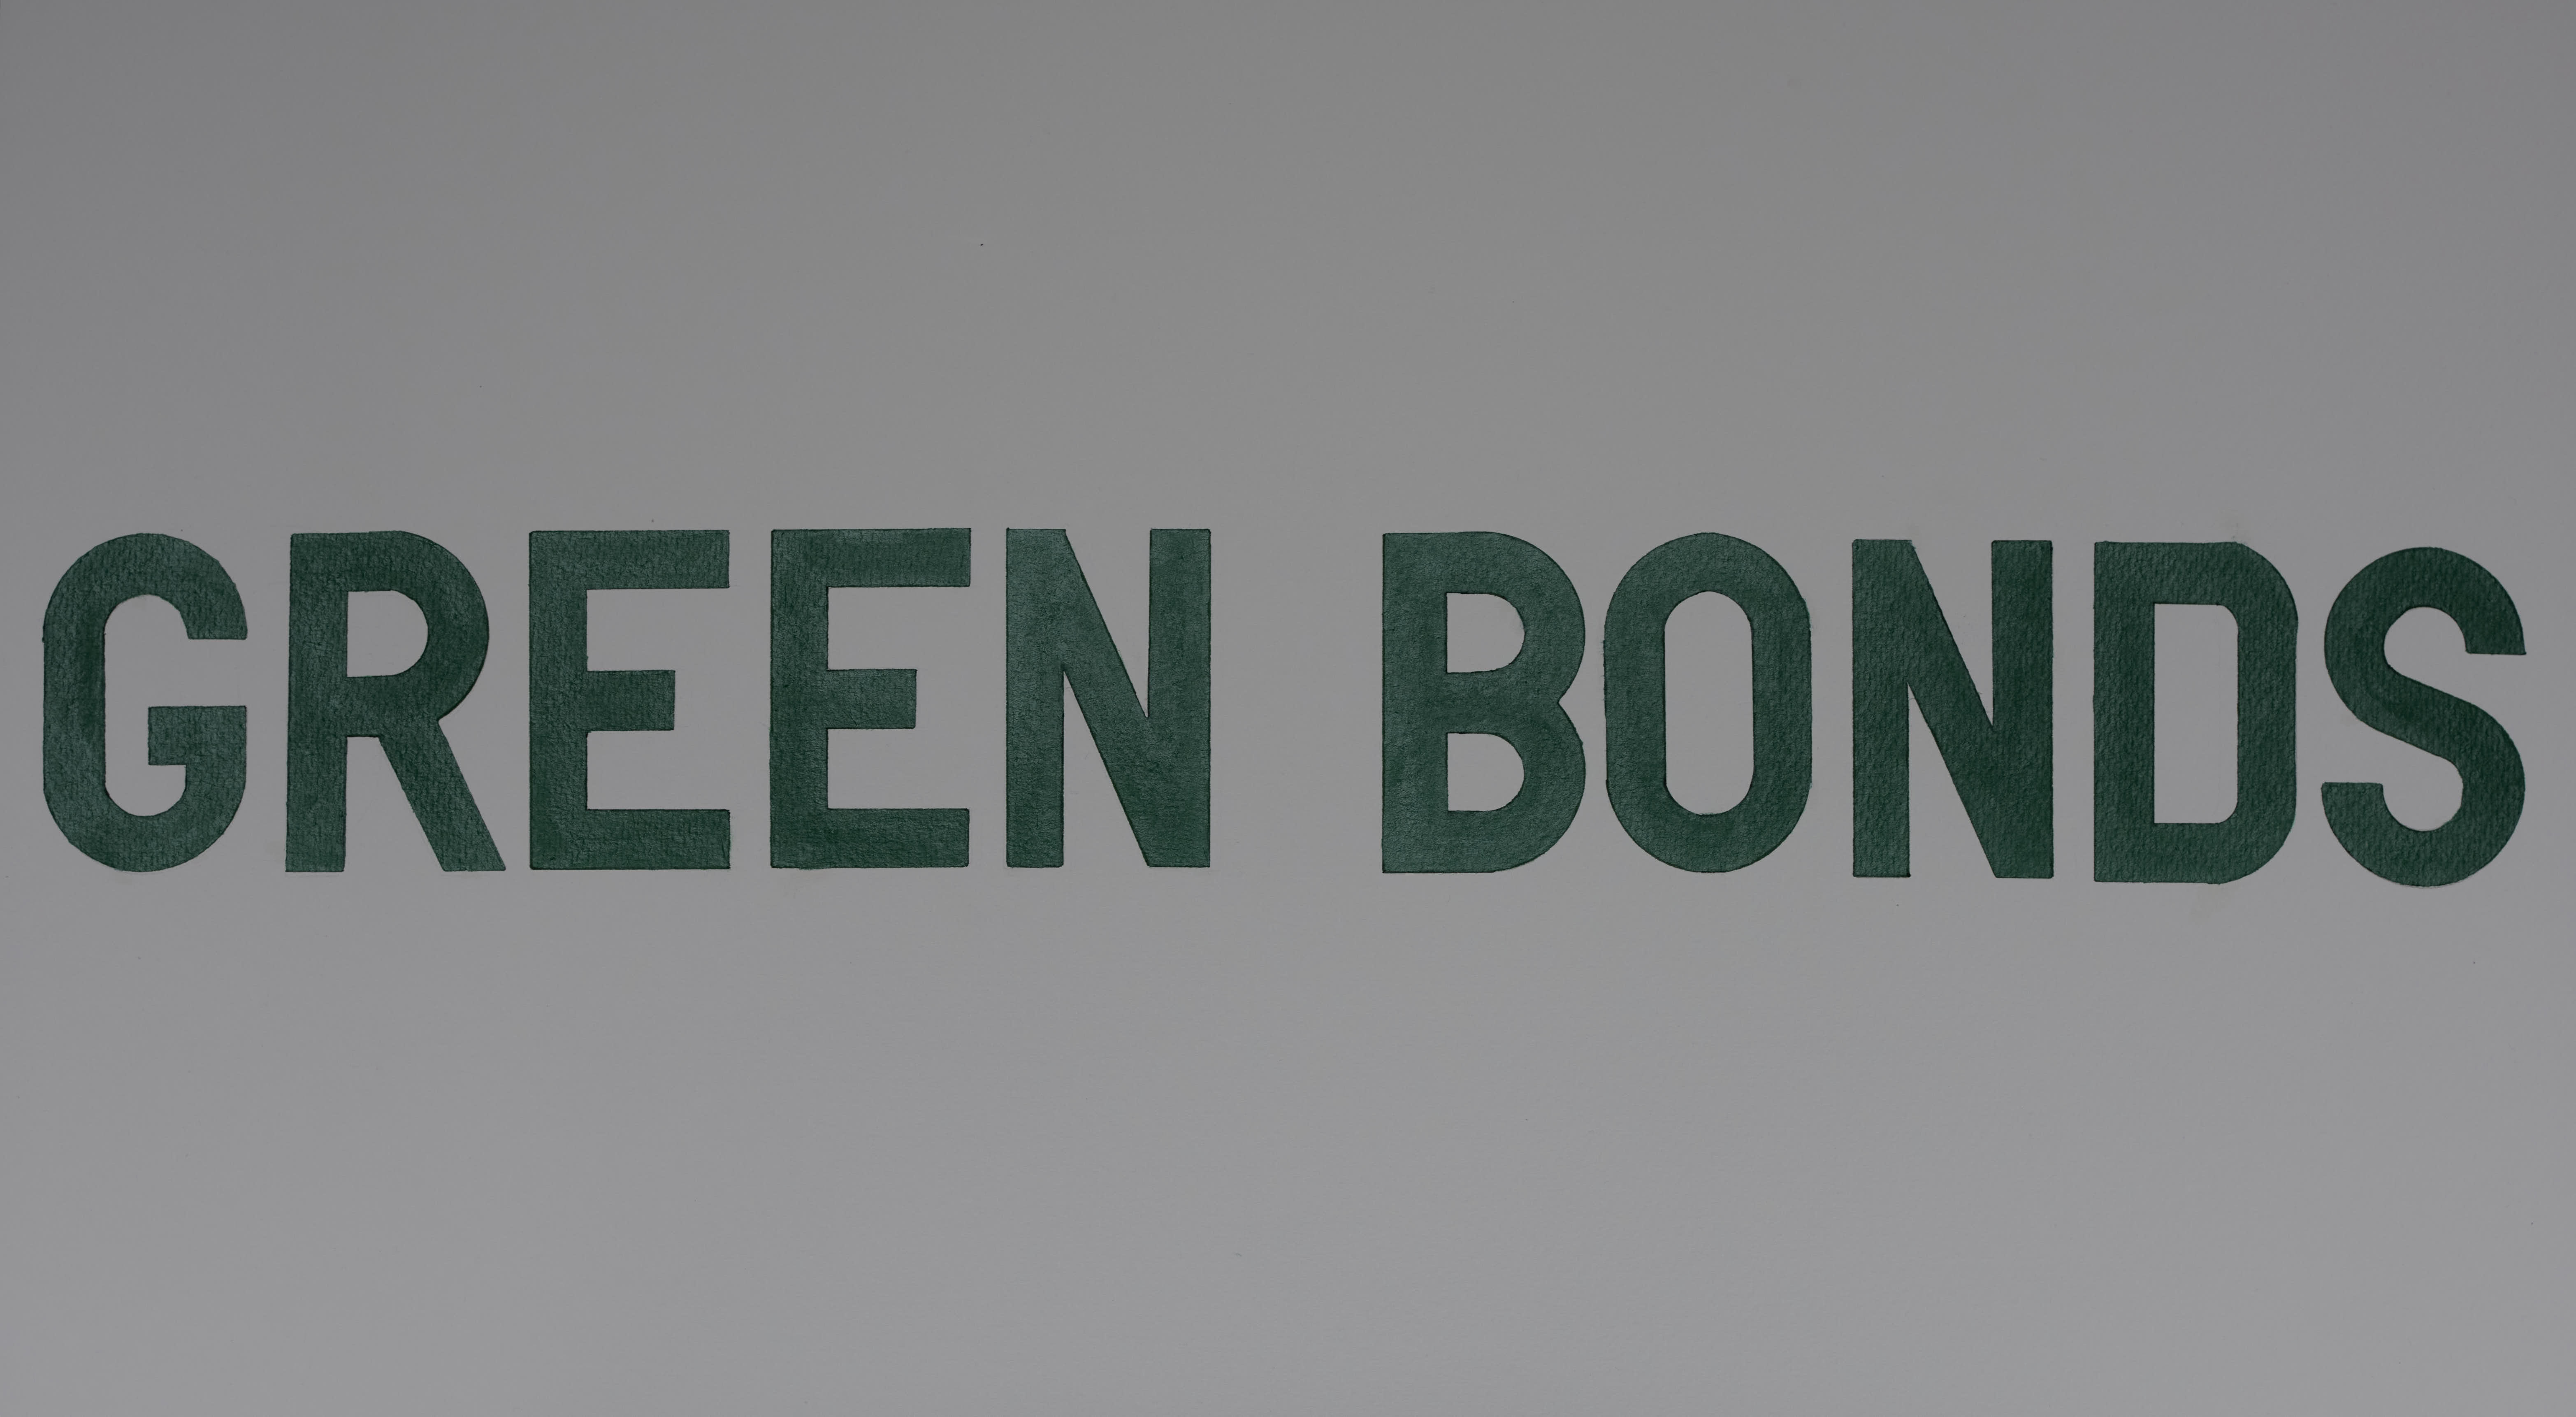 Green Bonds, 2020. Pen and acrylic on Paper, 44 x 76 cm